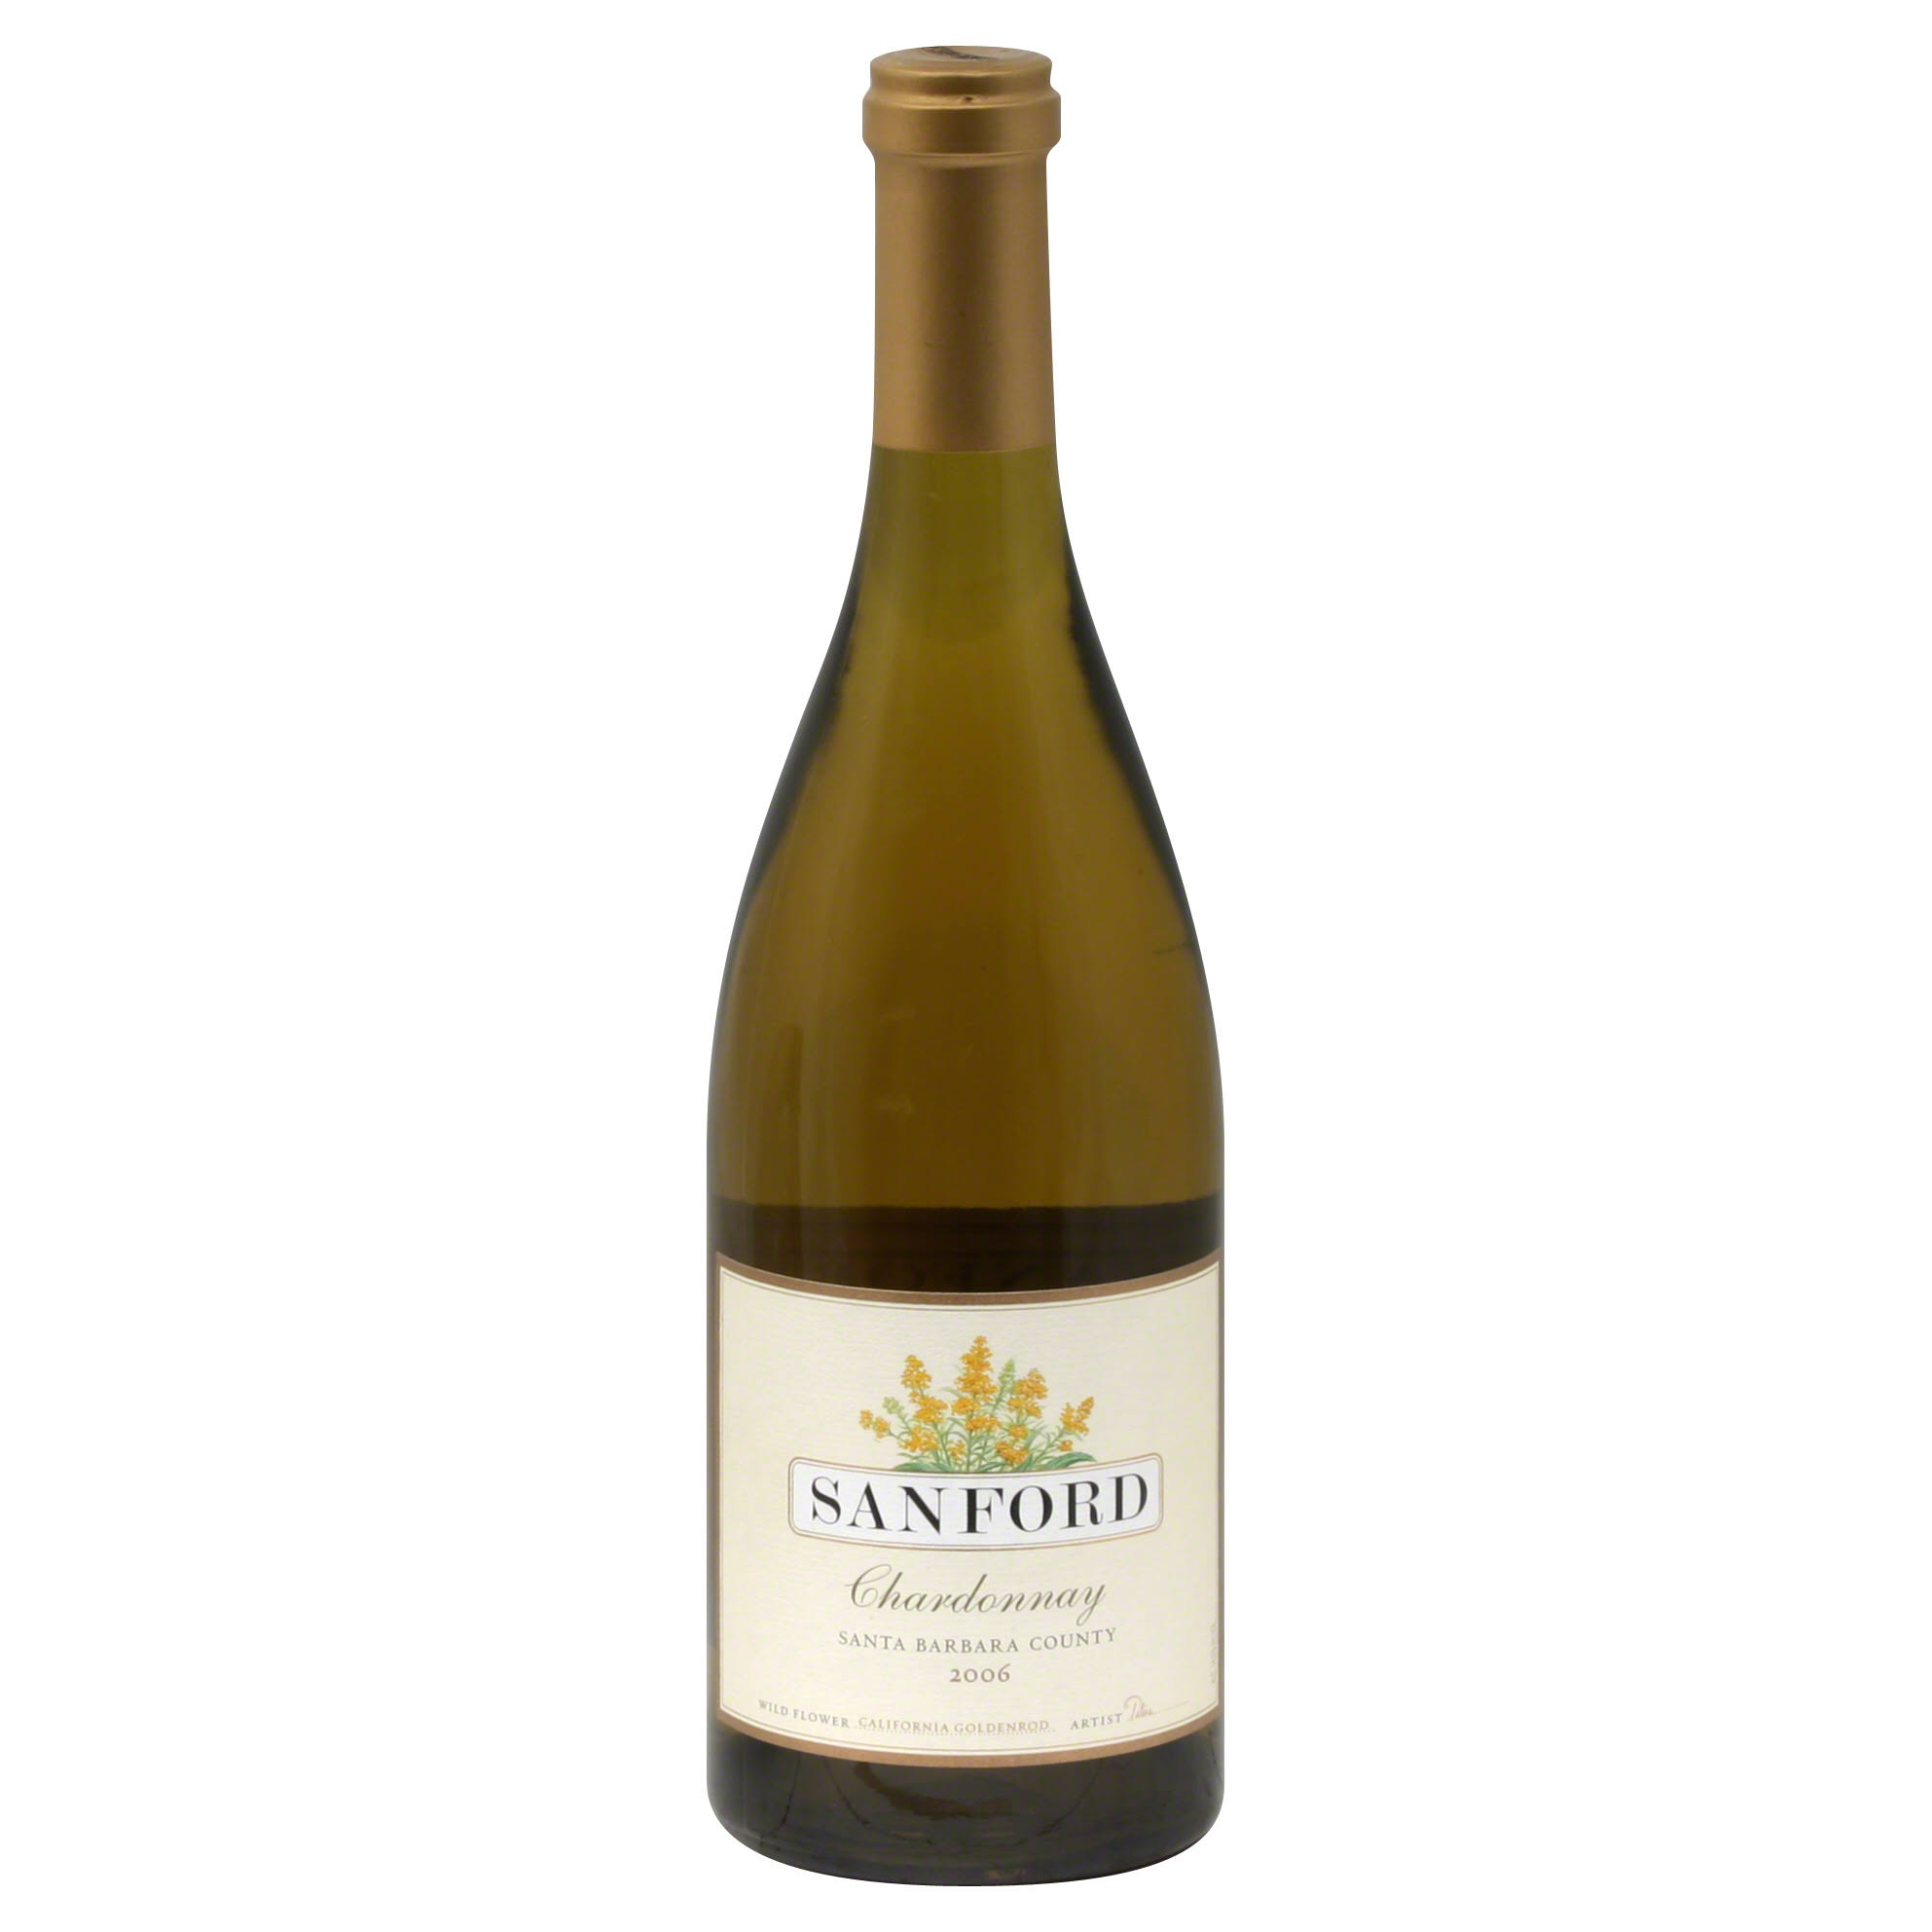 Sanford Chardonnay - California, USA